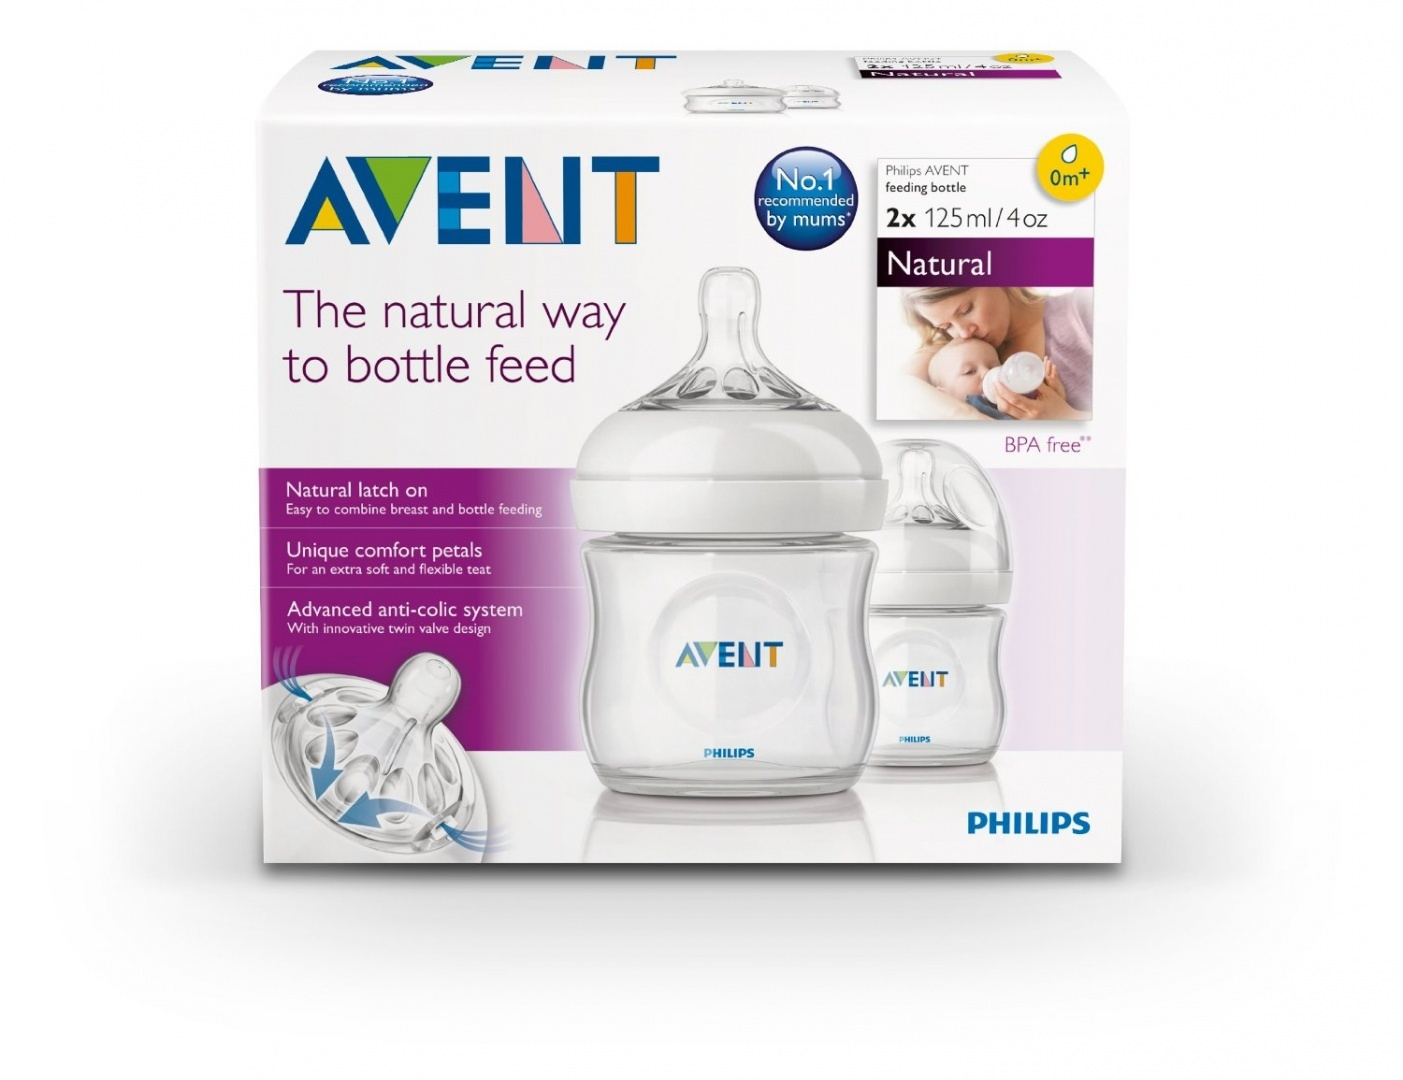 Philips Avent Scf690 27 125 Ml Natural Newborn Feeding Bottle By Gift Set Baby Share This Product